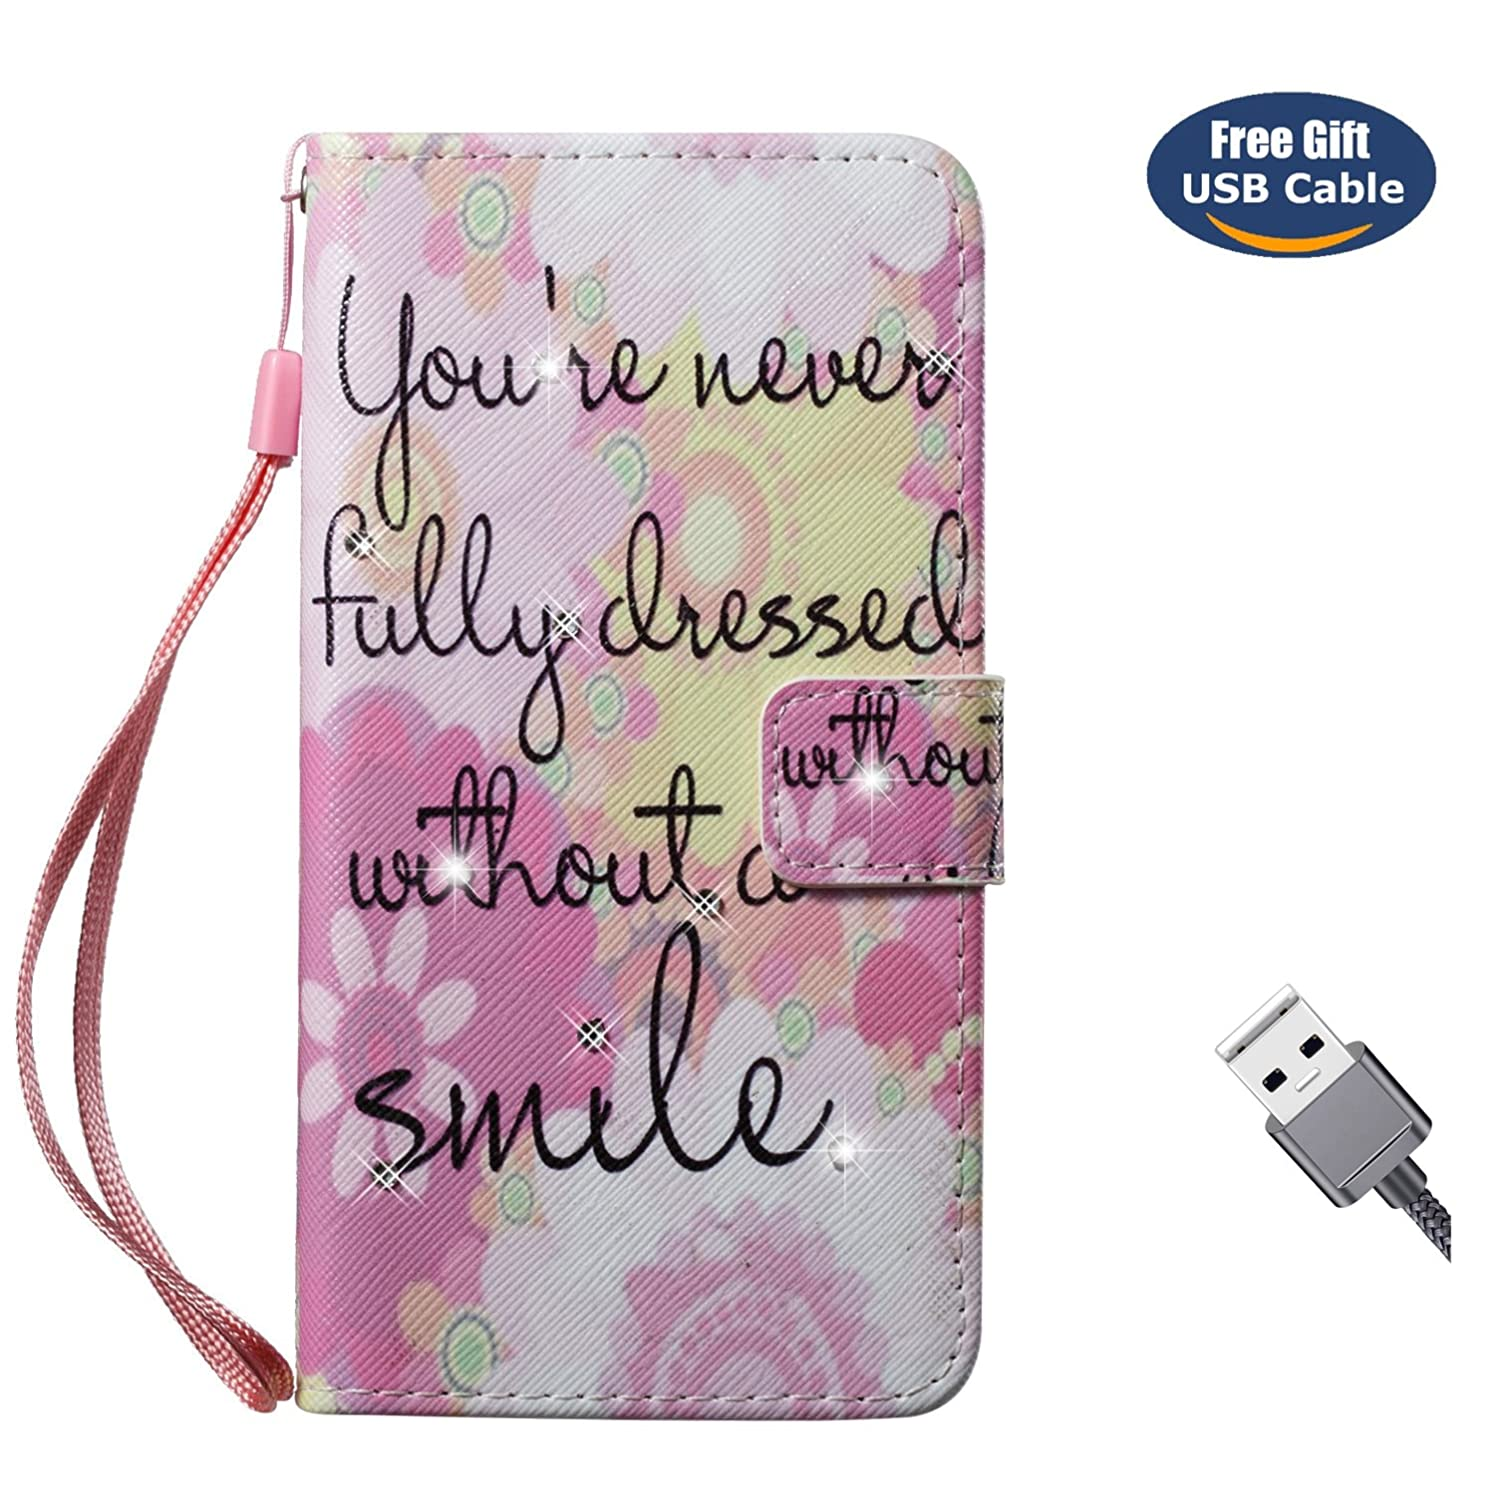 Funda Galaxy S5, Cover Galaxy S5, Aireratze Billetera Libro Cuero, PU Leather TPU Silicona Glitter Diamond 3D Smooth Surface [Correa mano] Soporte Ranuras Tarjetas Billeterapara Samsung S5 (Love Flower) yi2018912shou60000